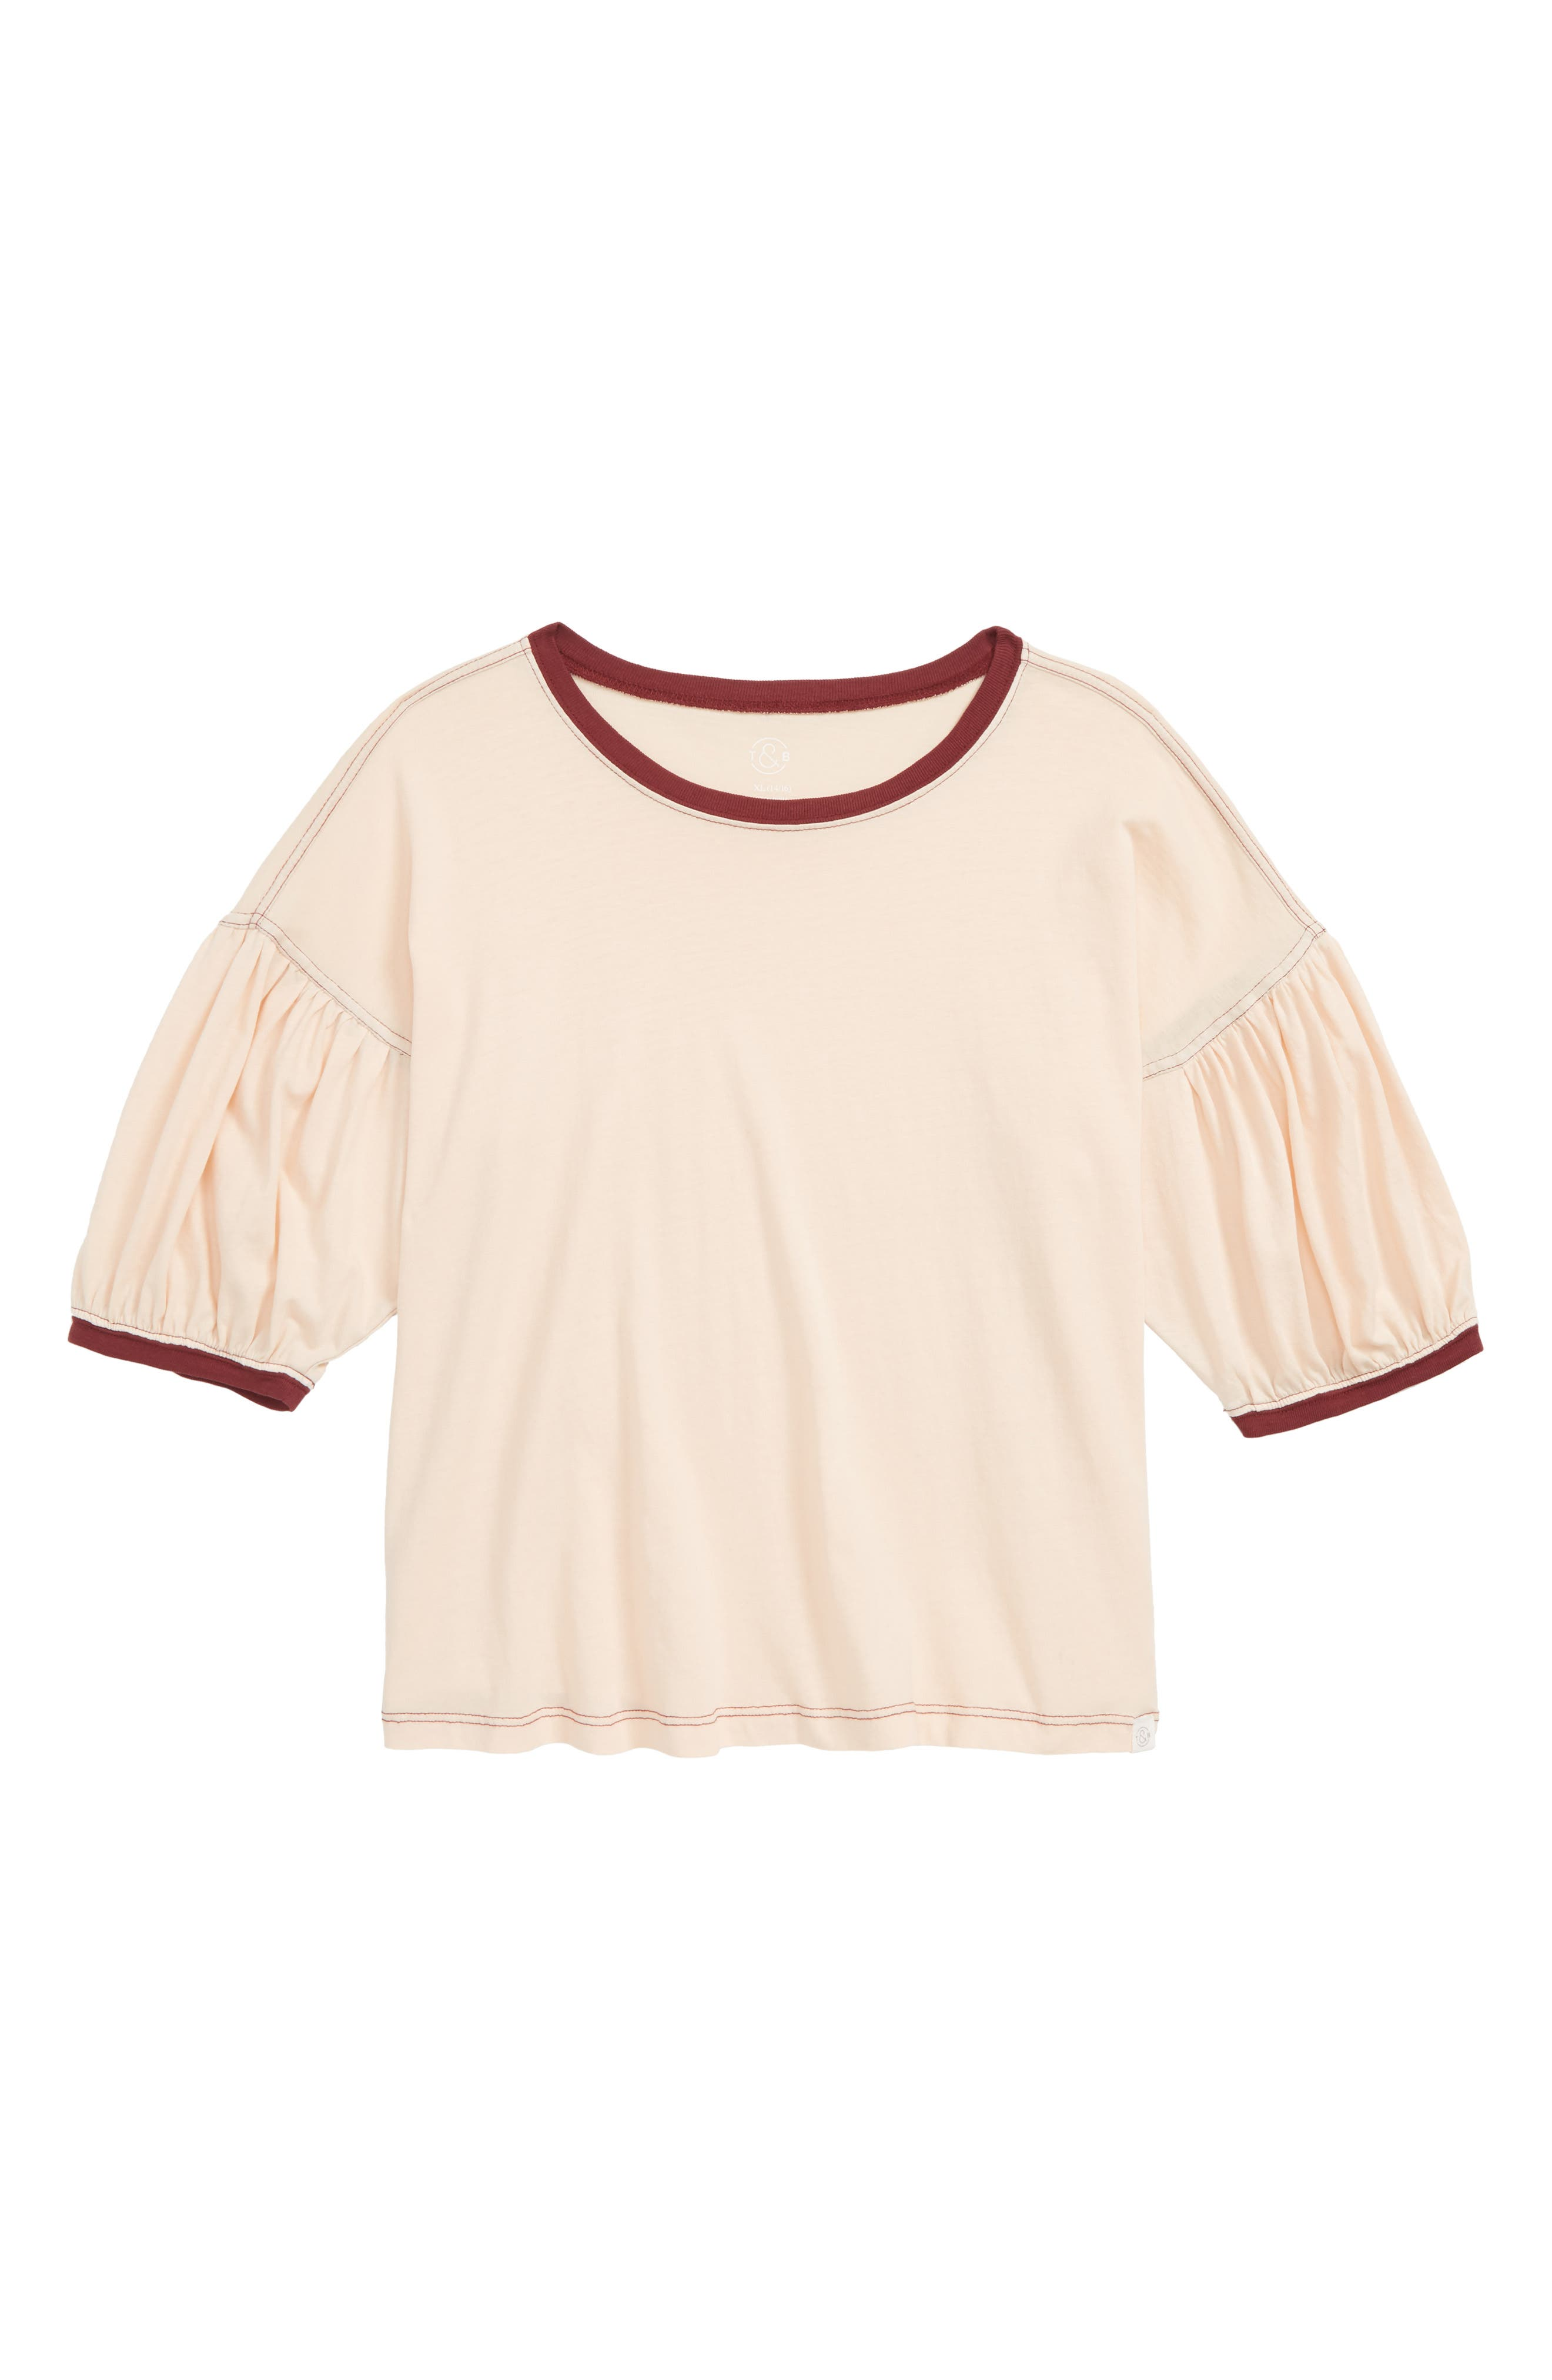 Puff Sleeve Tee,                             Main thumbnail 1, color,                             CORAL PALE